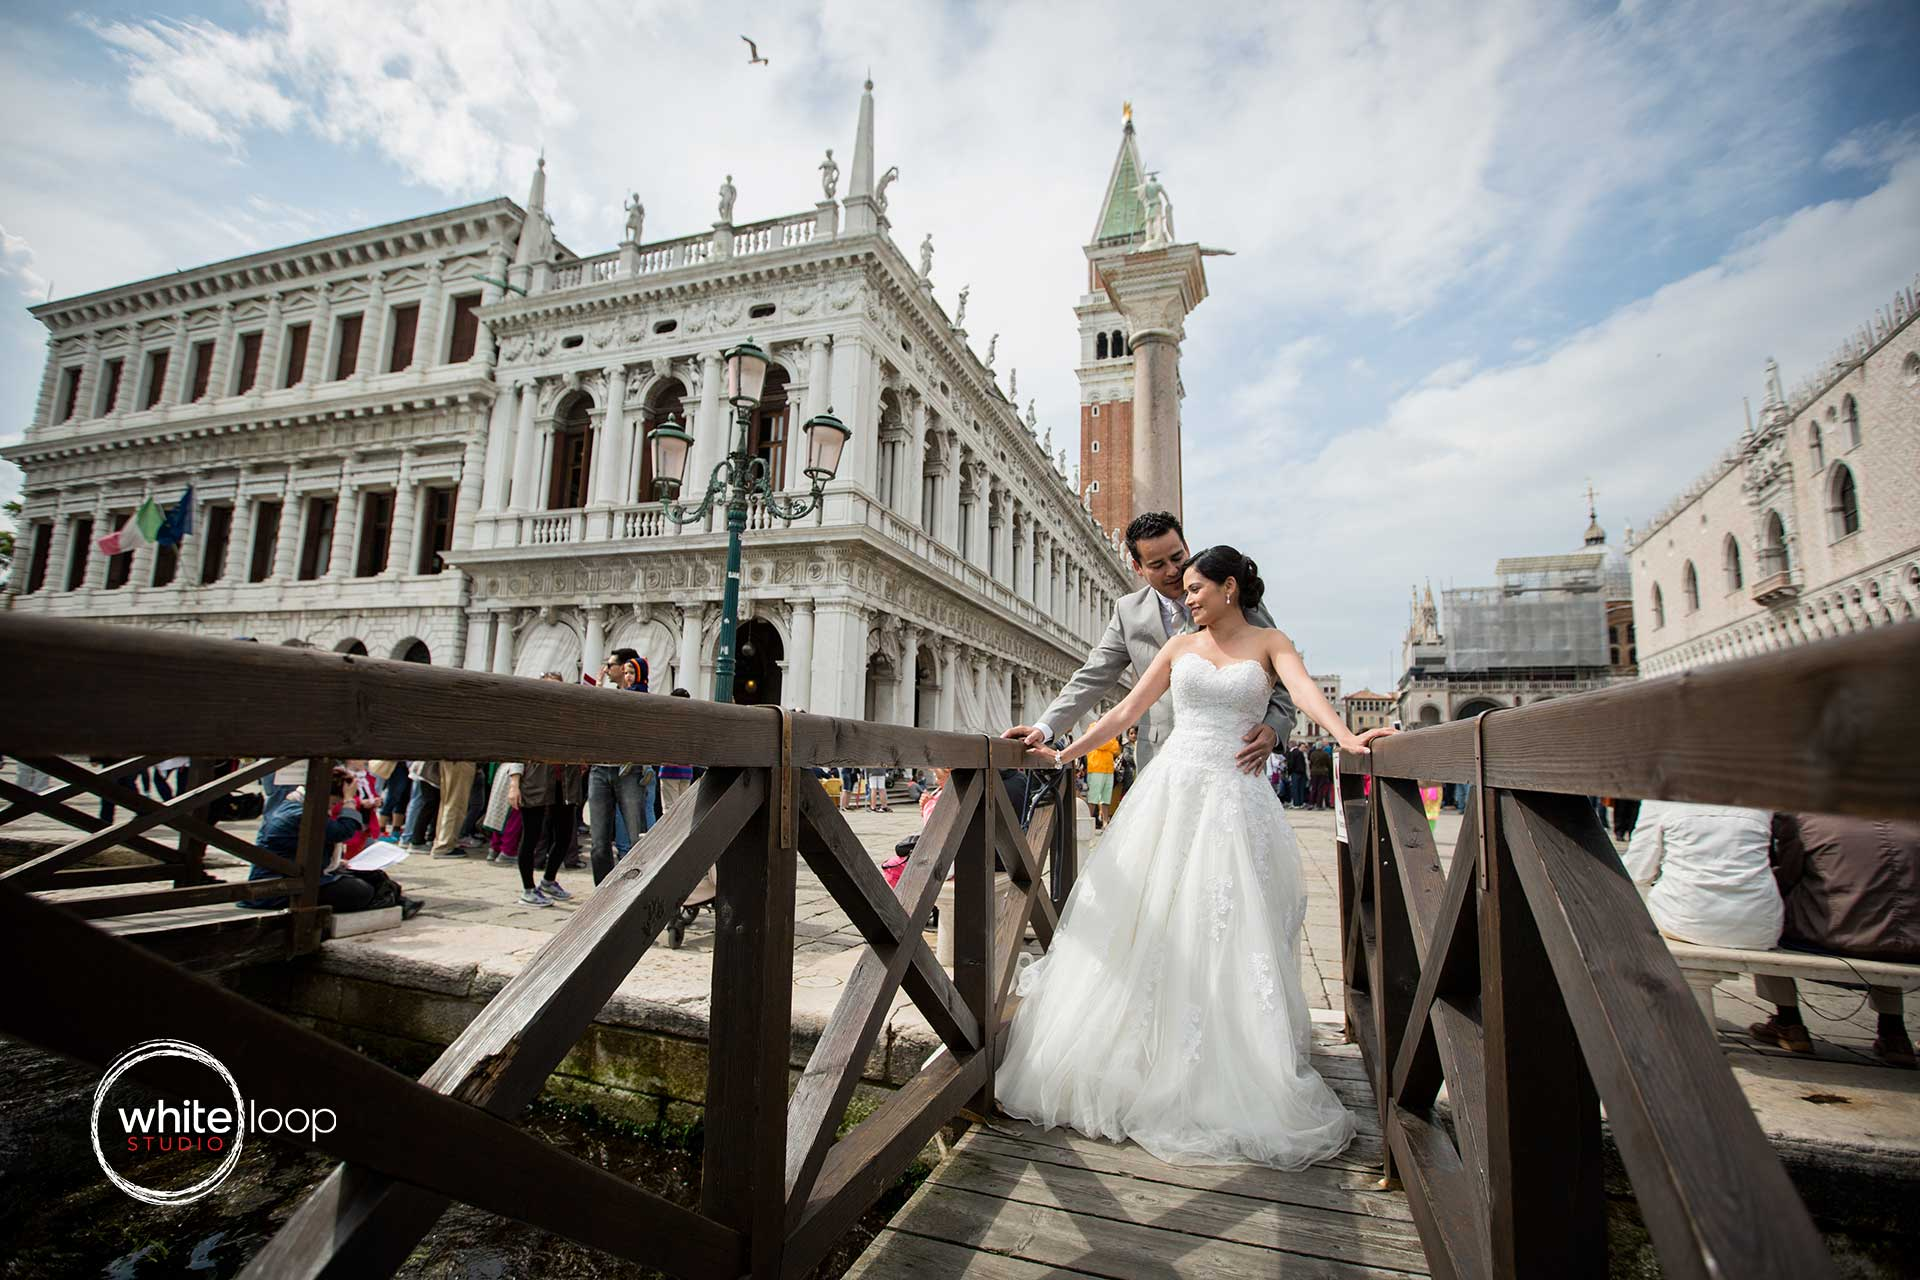 The bride and groom are holding each other over a famous dock in Venice, just in front of one of the most popular and romantic square in Italy: Piazza San Marco